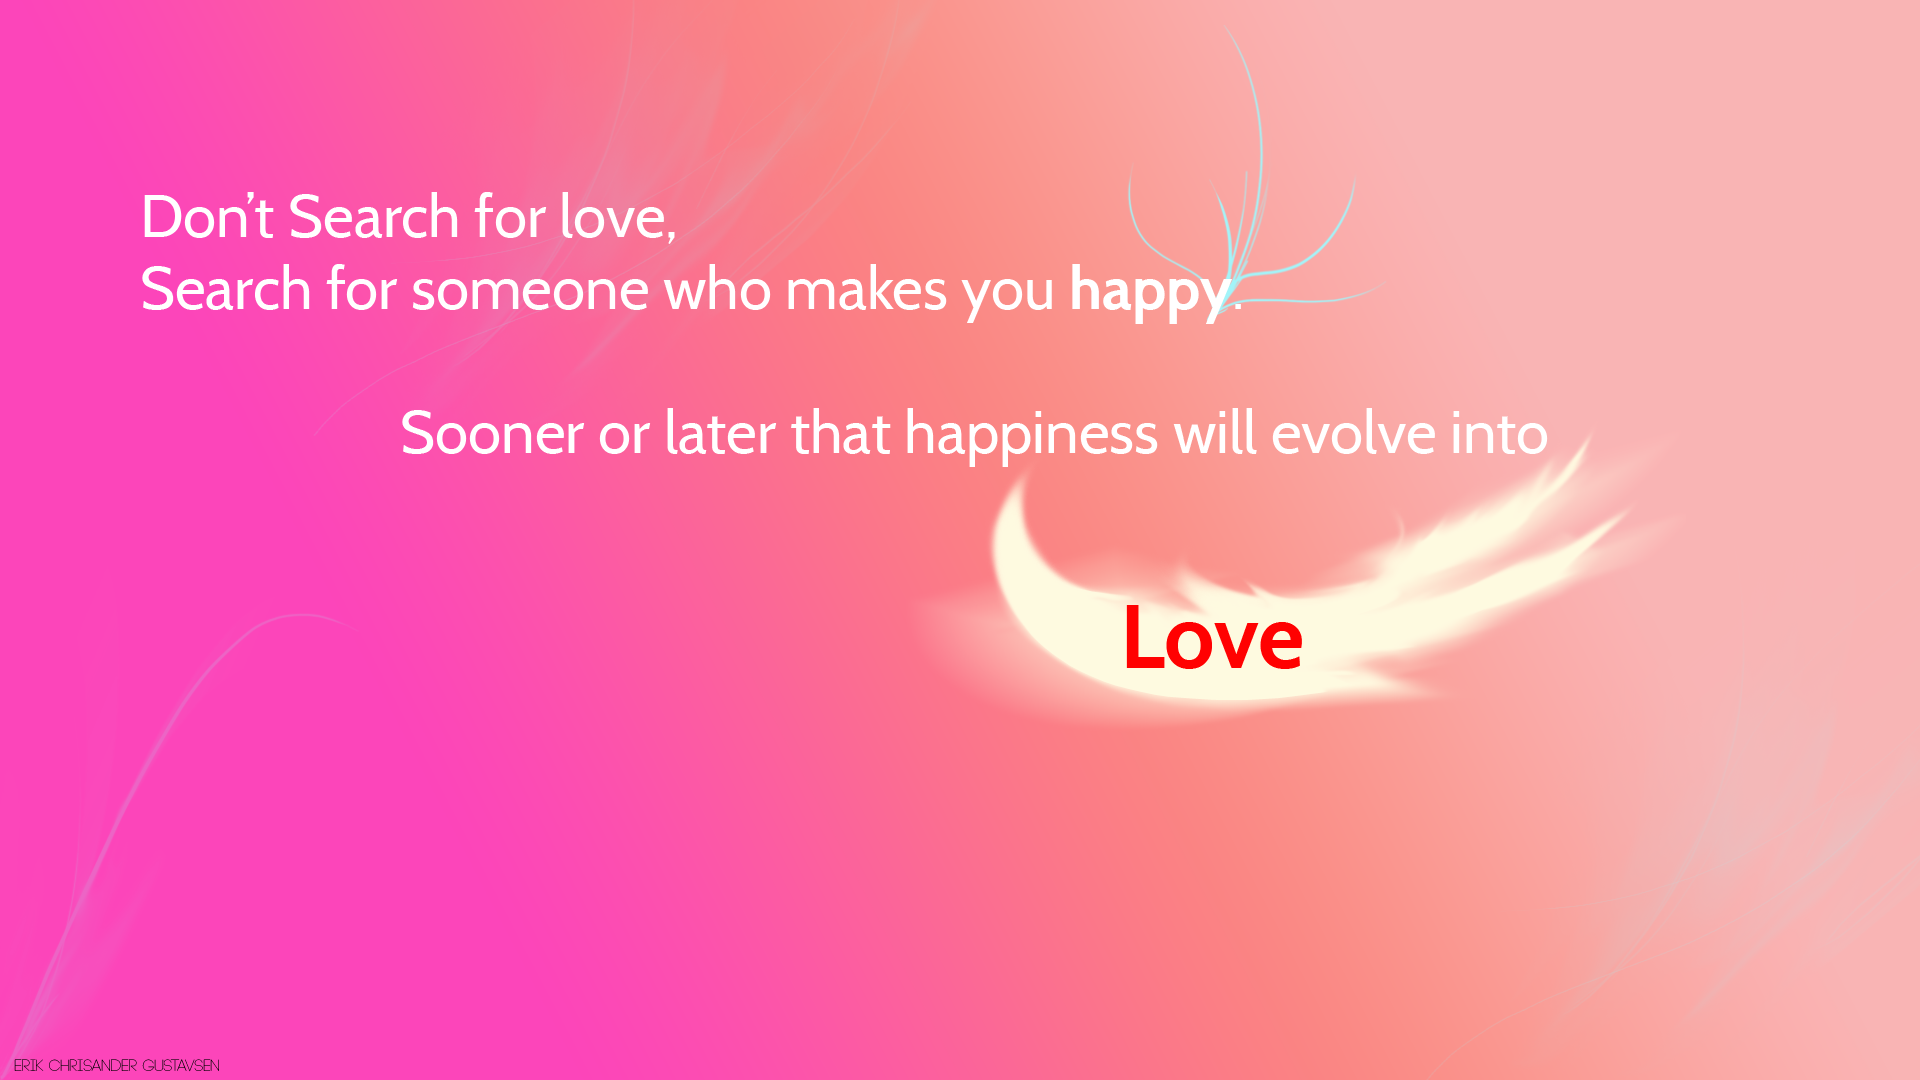 Parents Love Desktop Wallpaper : Best Love Quote - Wallpaper, High Definition, High Quality, Widescreen